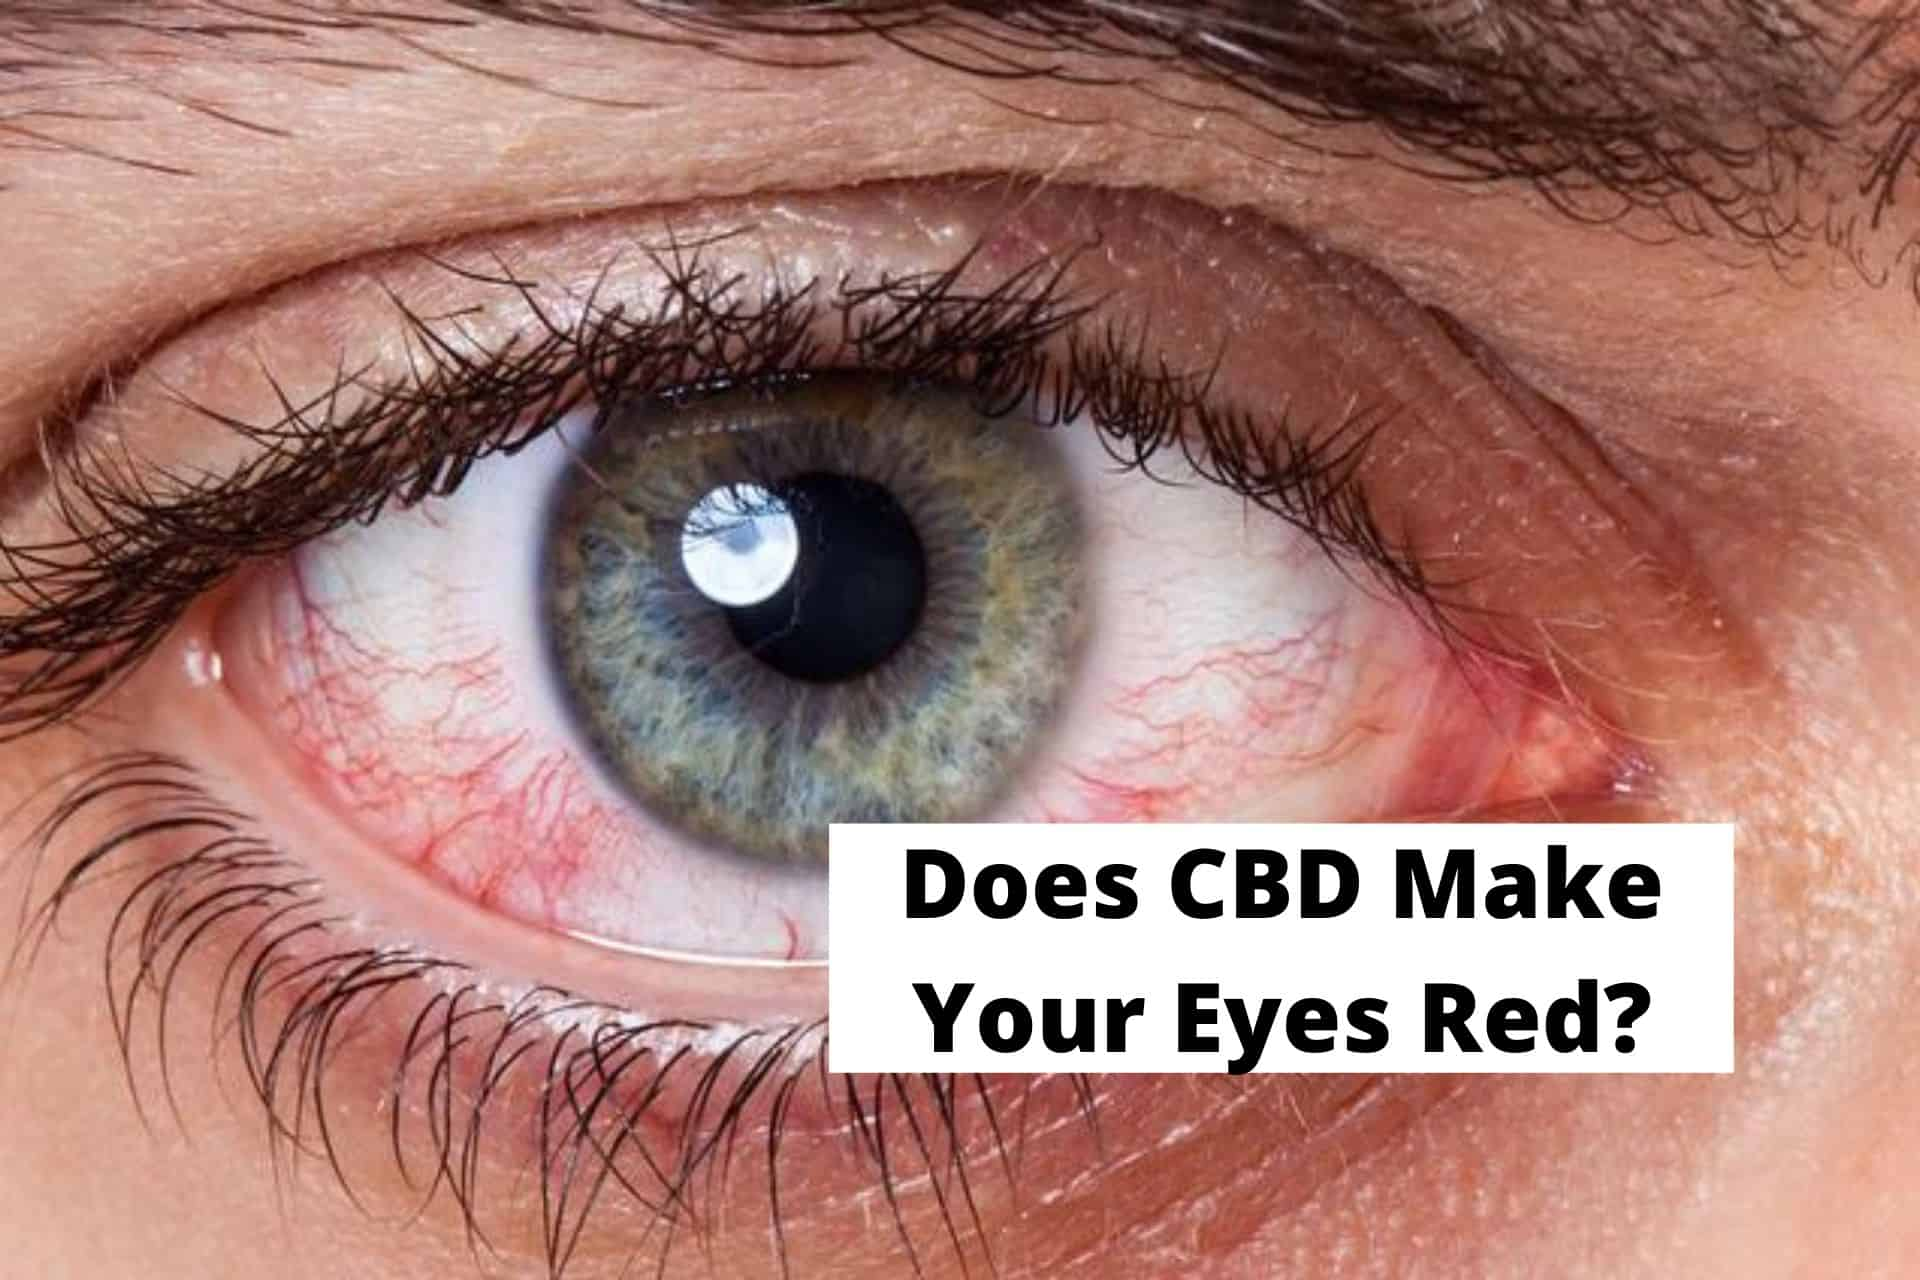 Does CBD Make Your Eyes Red?